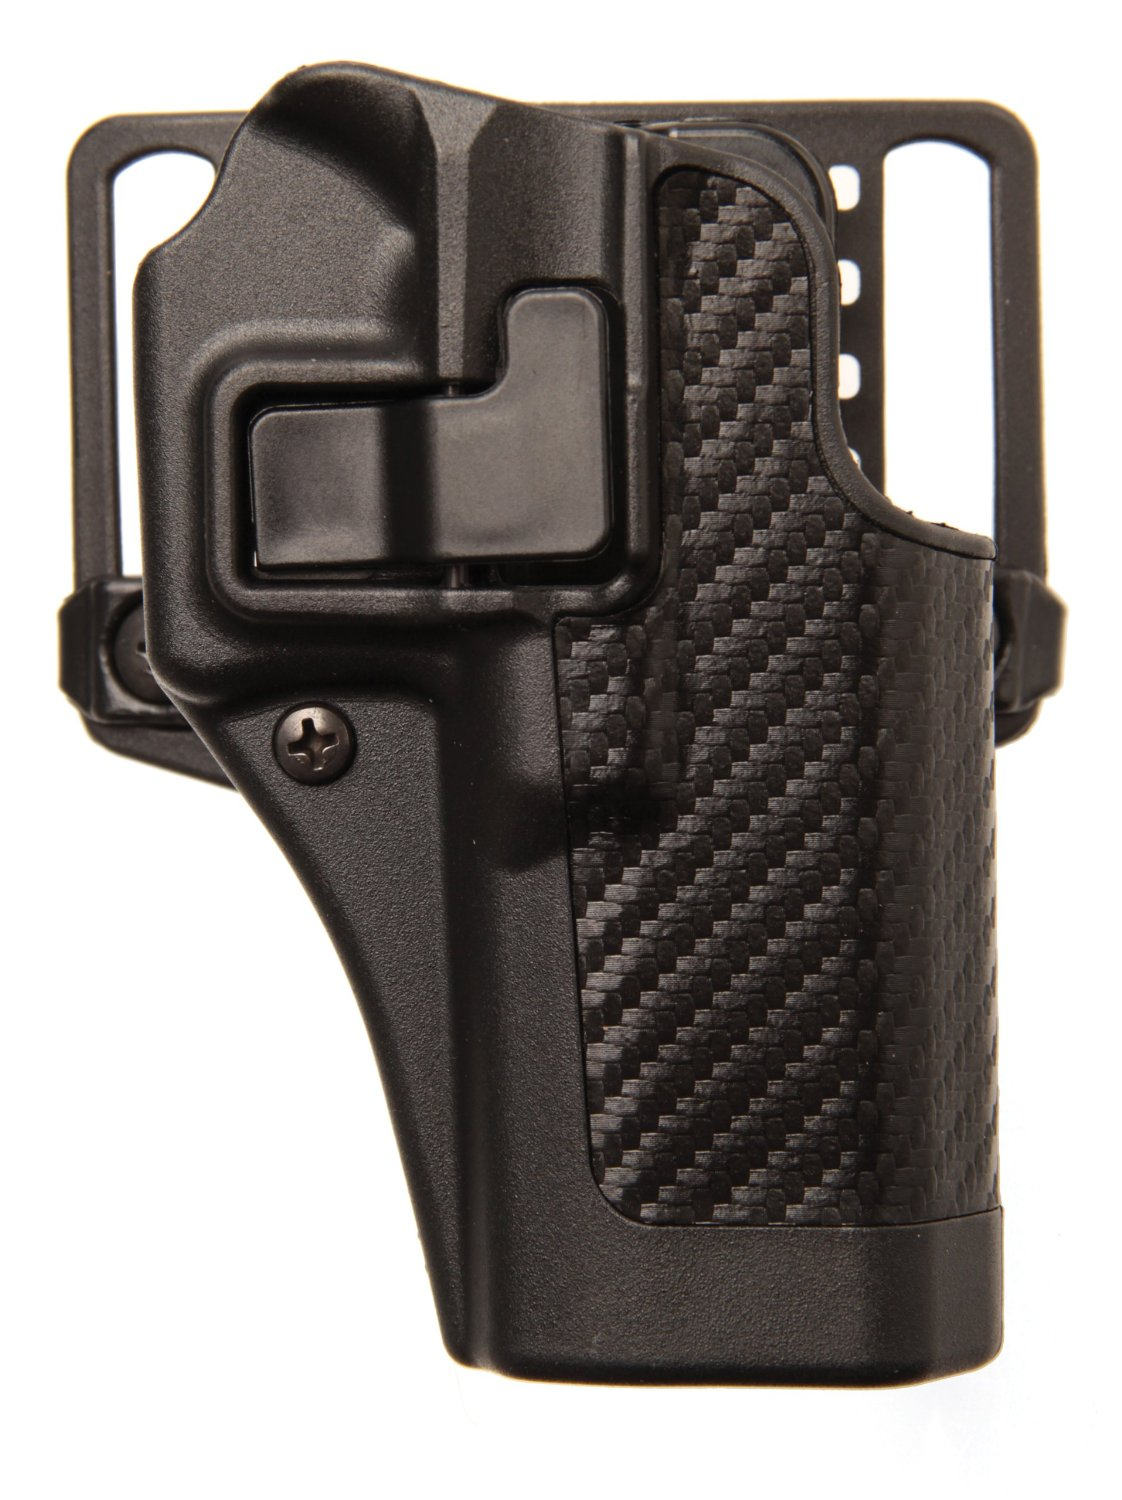 Best Ambidextrous Gun Holsters On The Market [Buyer's Guide]